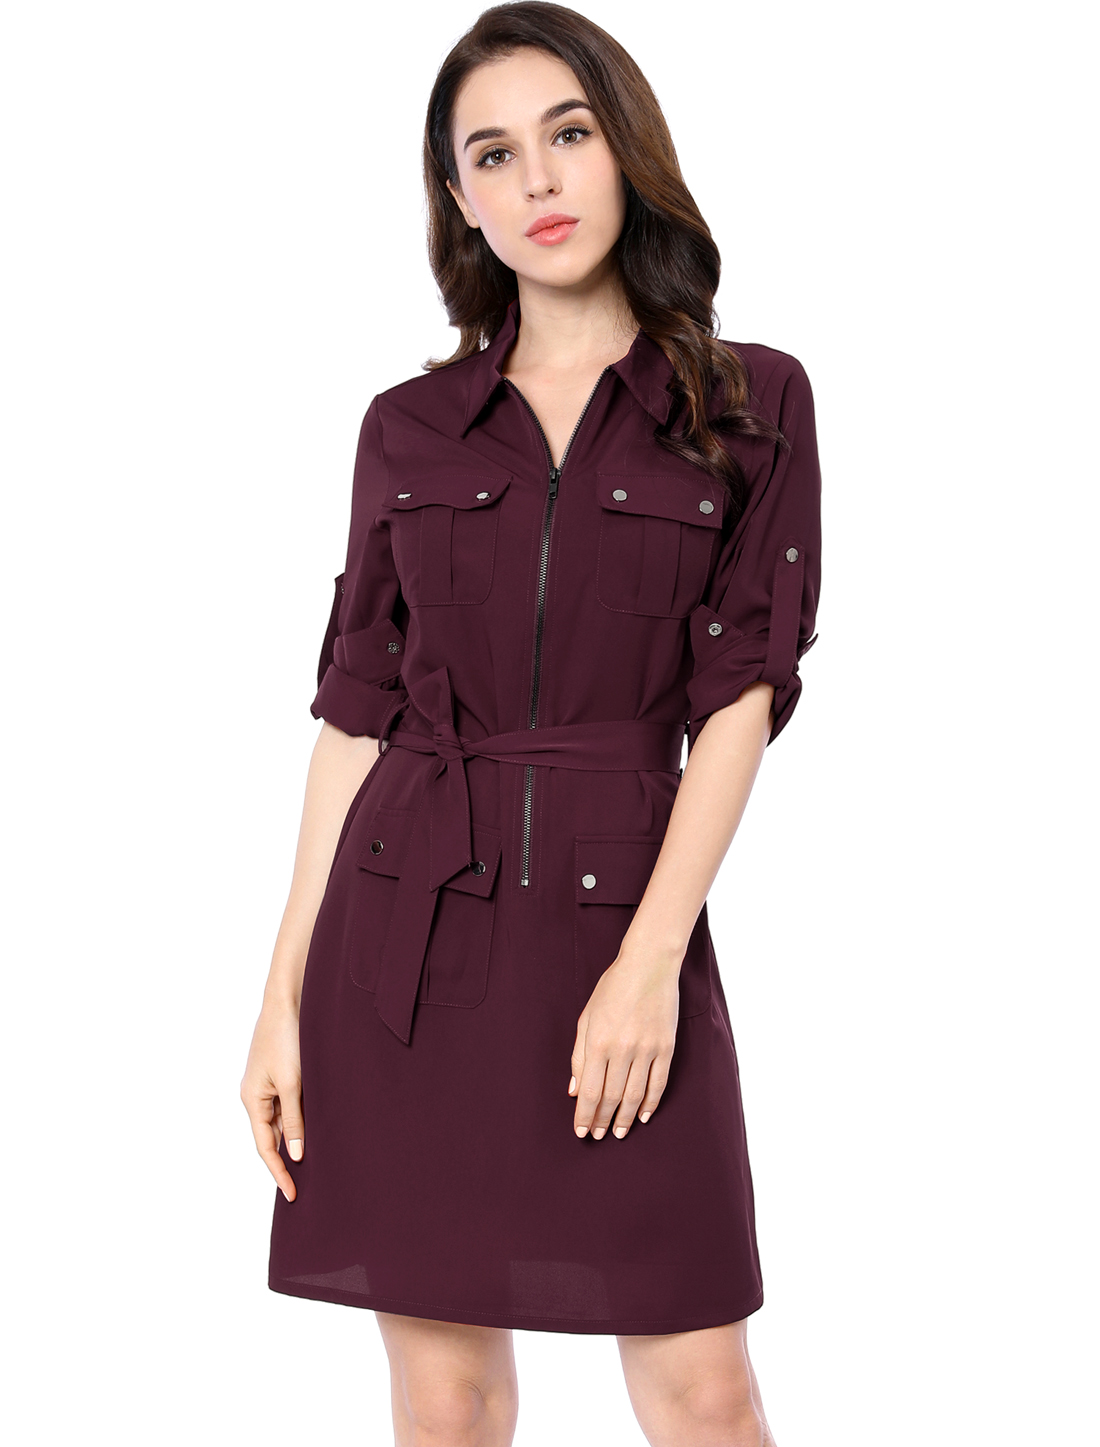 Women Roll Up Sleeves Multi-Pocket Above Knee Belted Shirt Dress Red XL